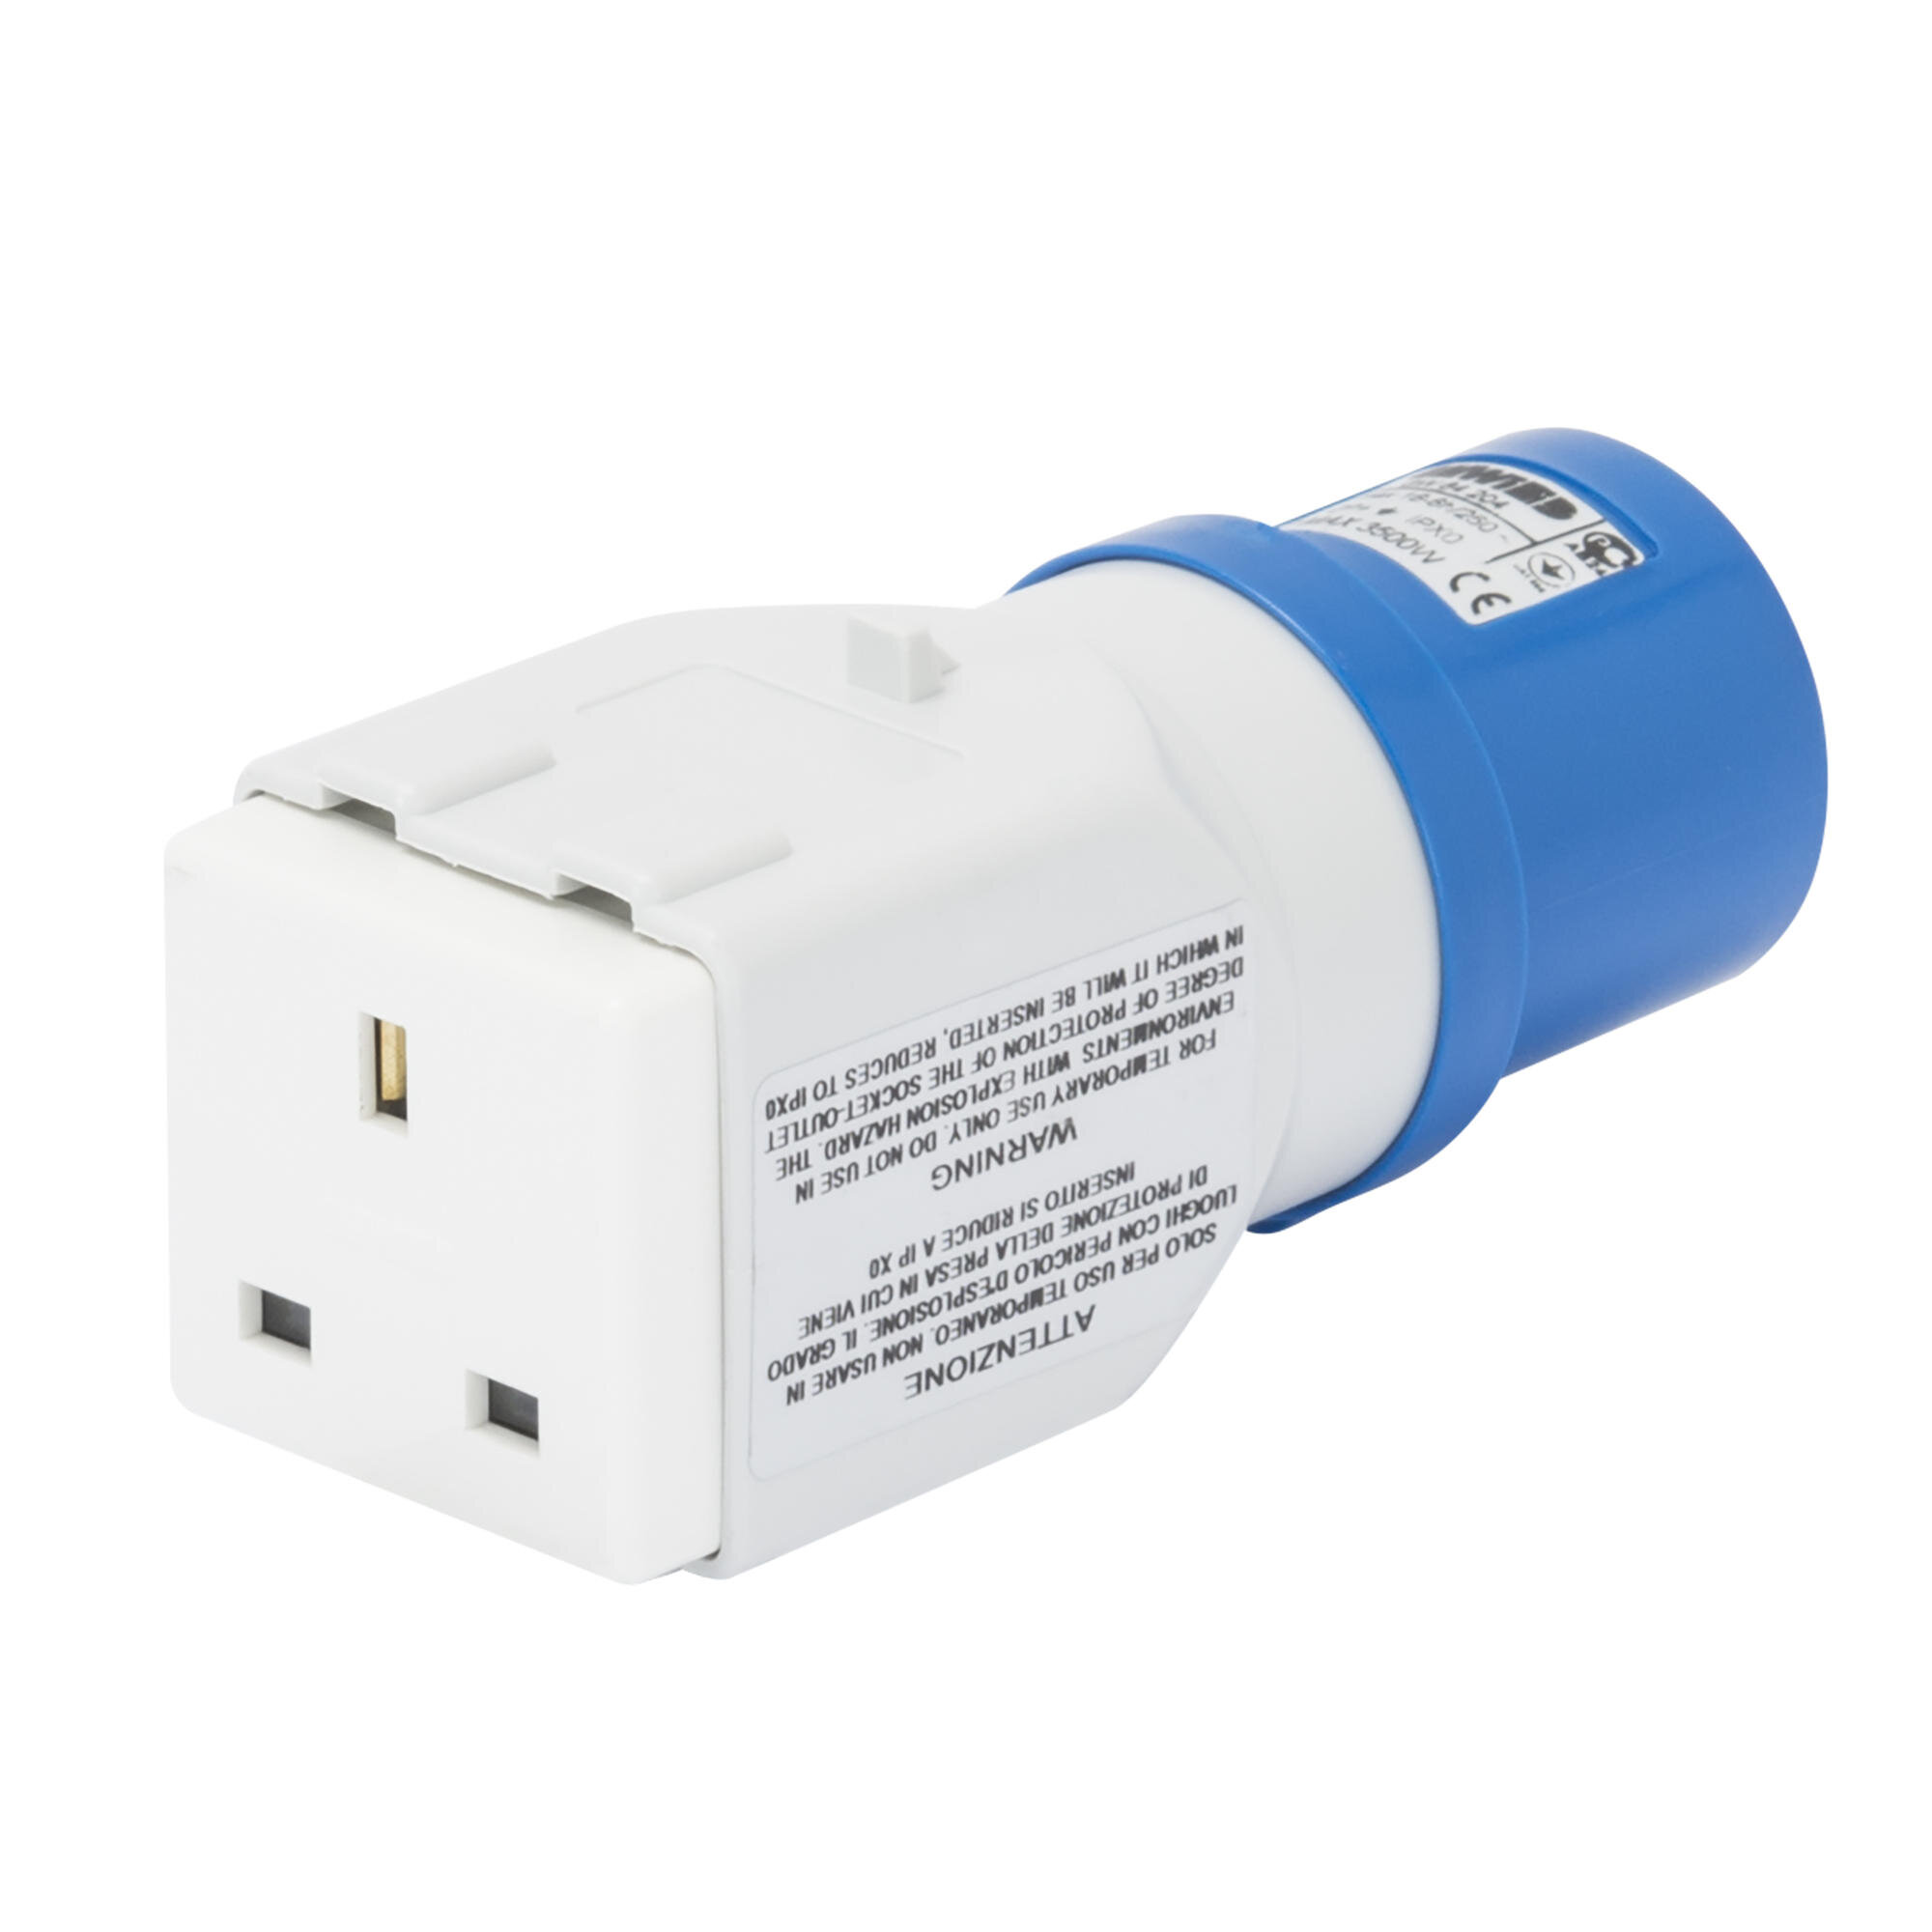 Adaptor 16 amp to 13 amp 220v